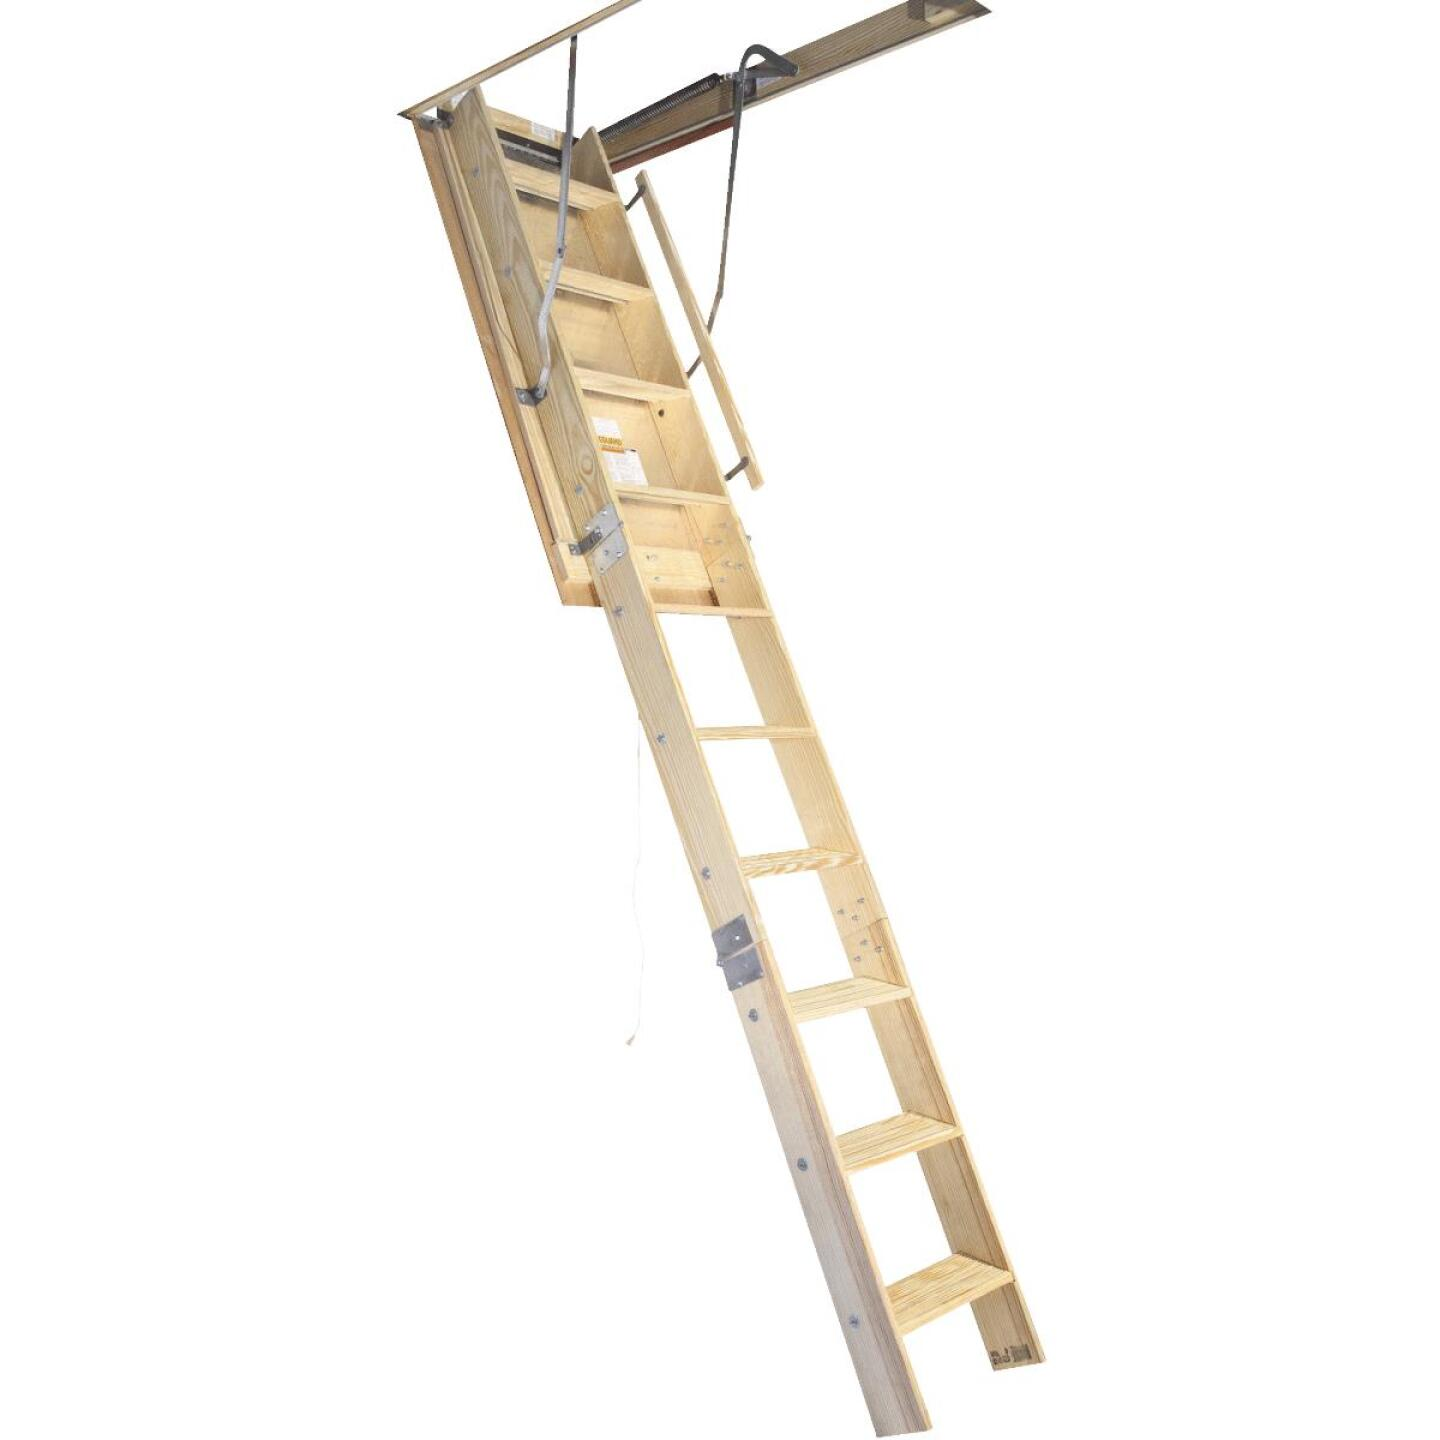 Louisville Champion 7 Ft. to 8 Ft. 9 In., 22-1/2 In. x 54 In. Wood Attic Stairs, 300 Lb. Load Image 1